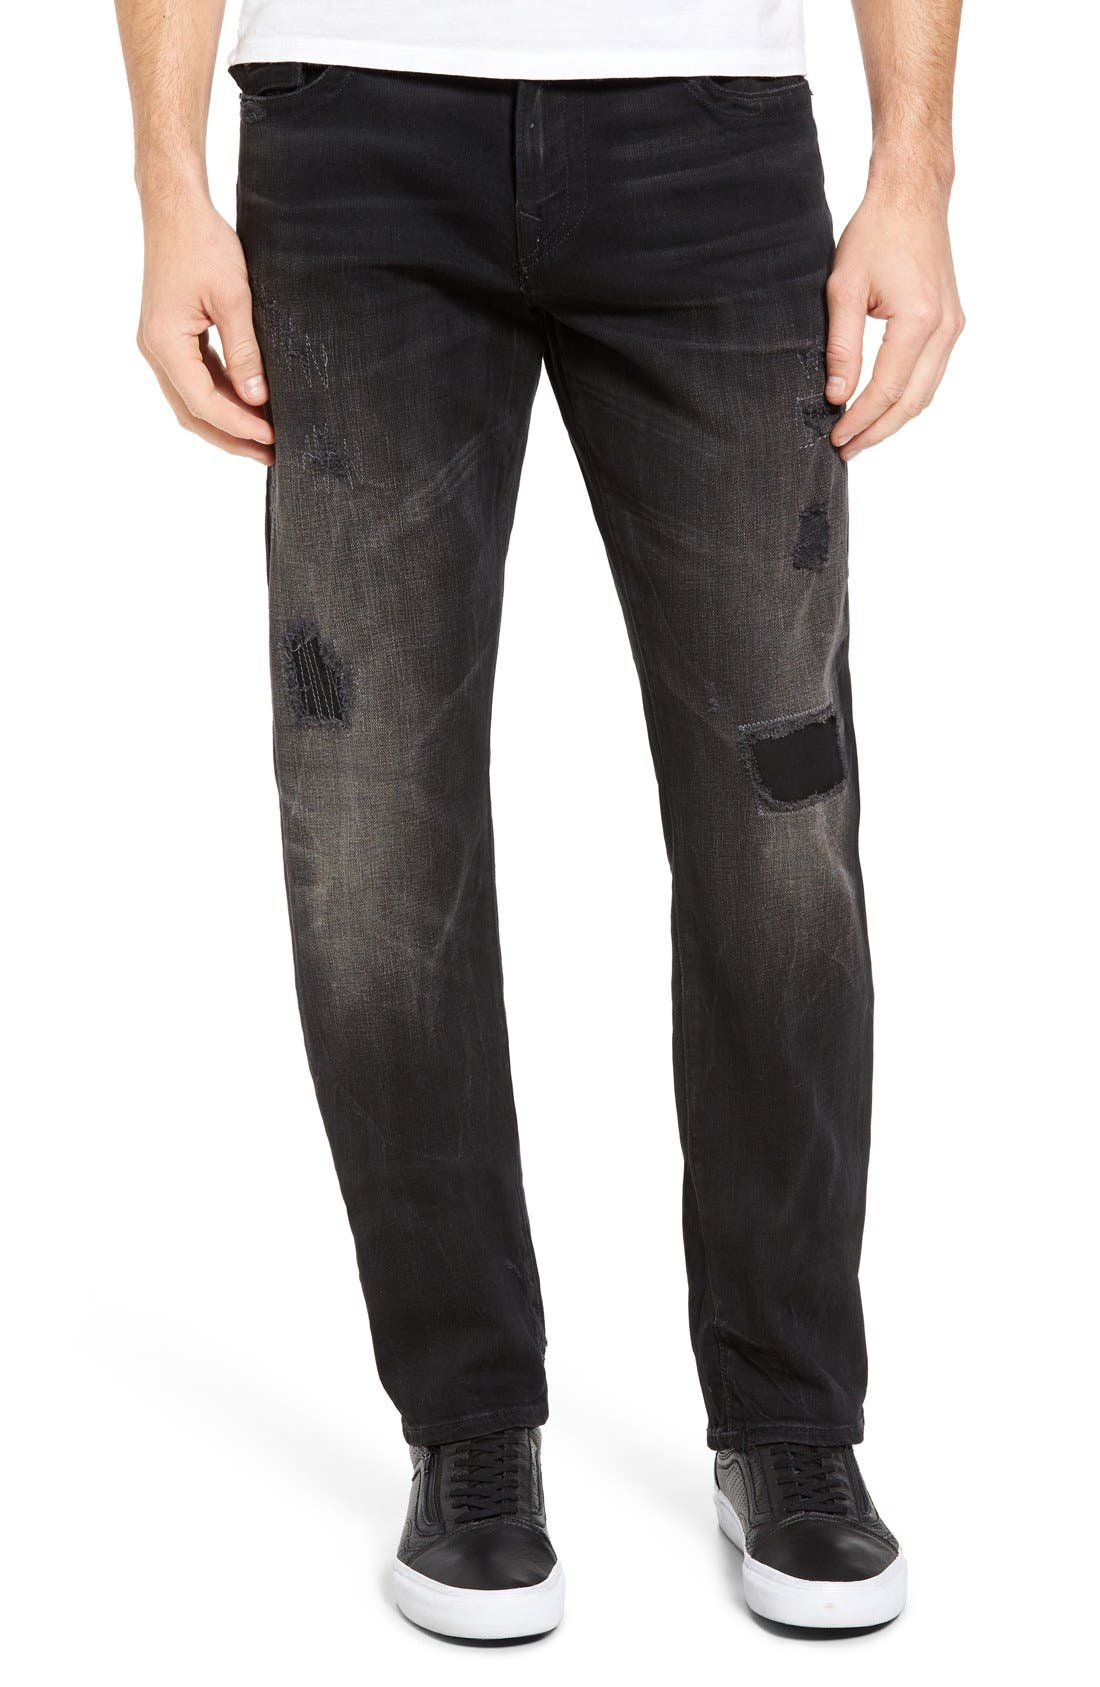 True Religion Brand Jeans Ricky Relaxed Fit Jeans (DKBD Mended Warrior)